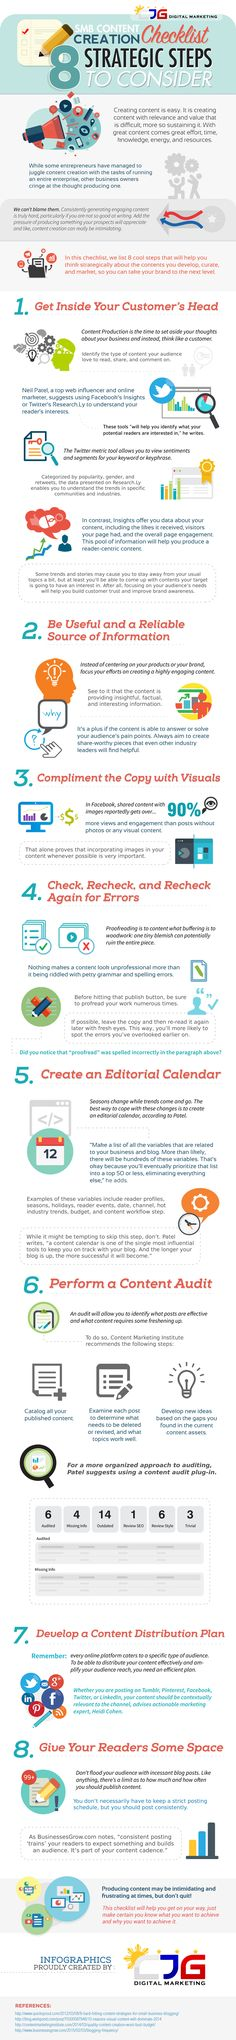 infographic: Content Creation Checklist – 8 Strategic Steps to Consider